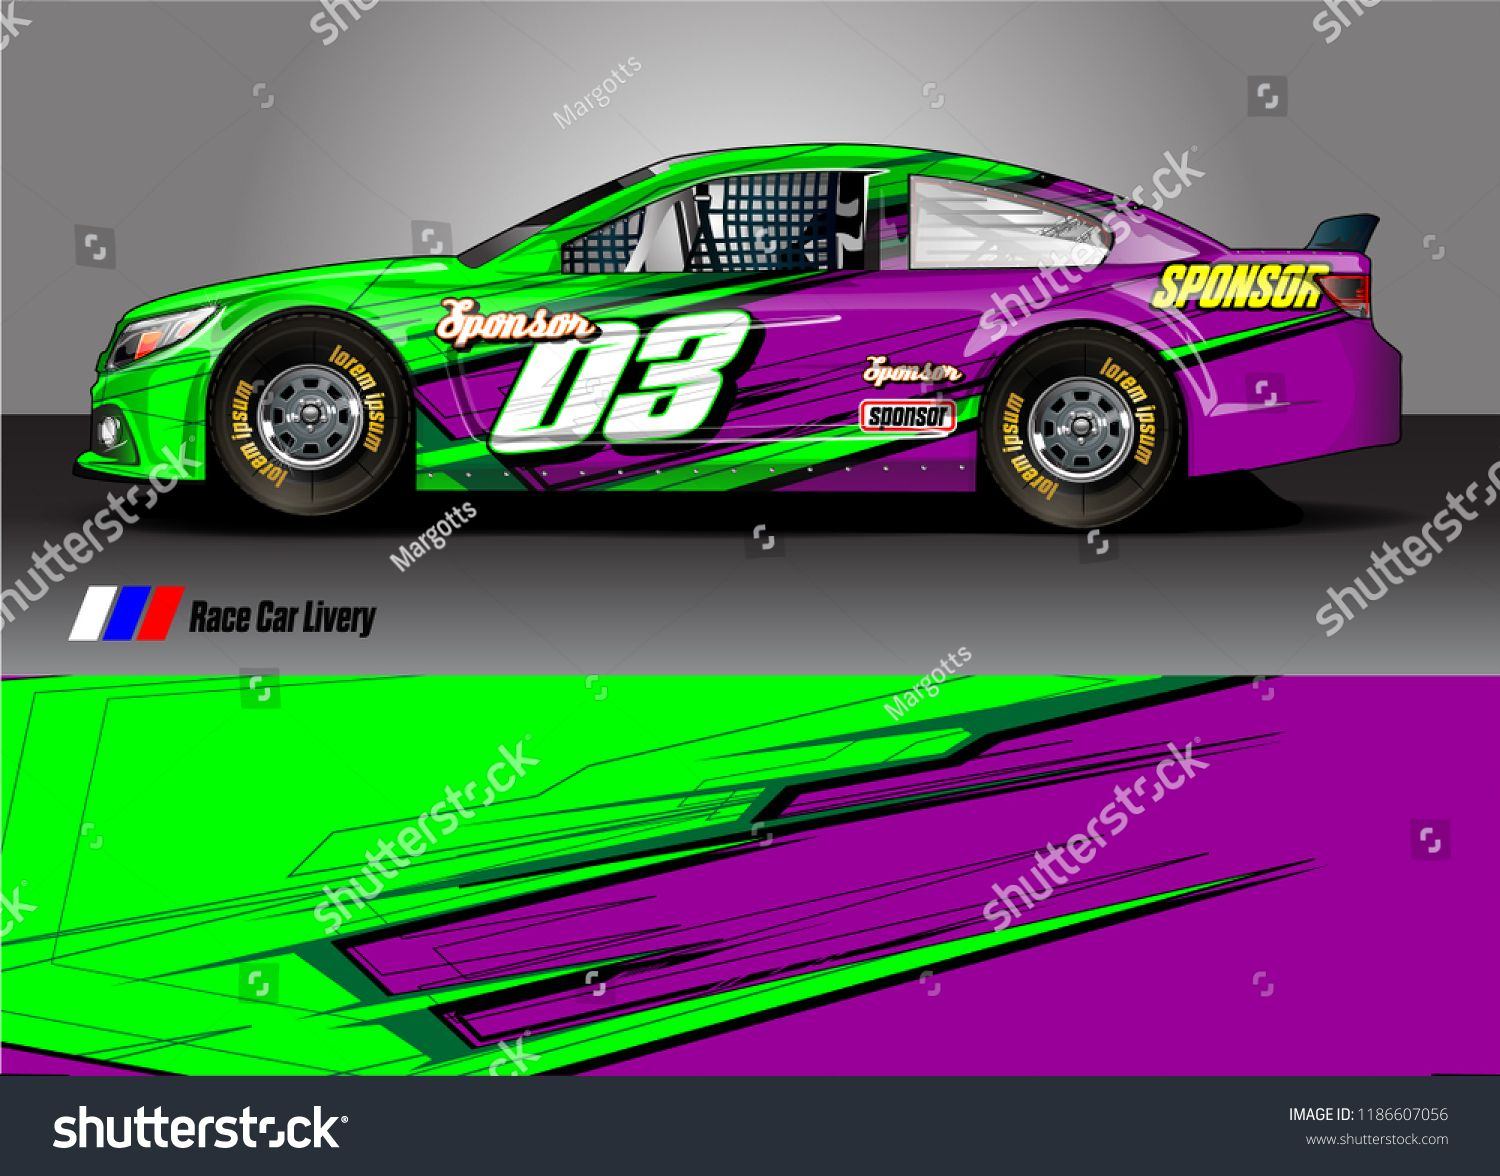 Car decal design vector  abstract racing graphic stripe